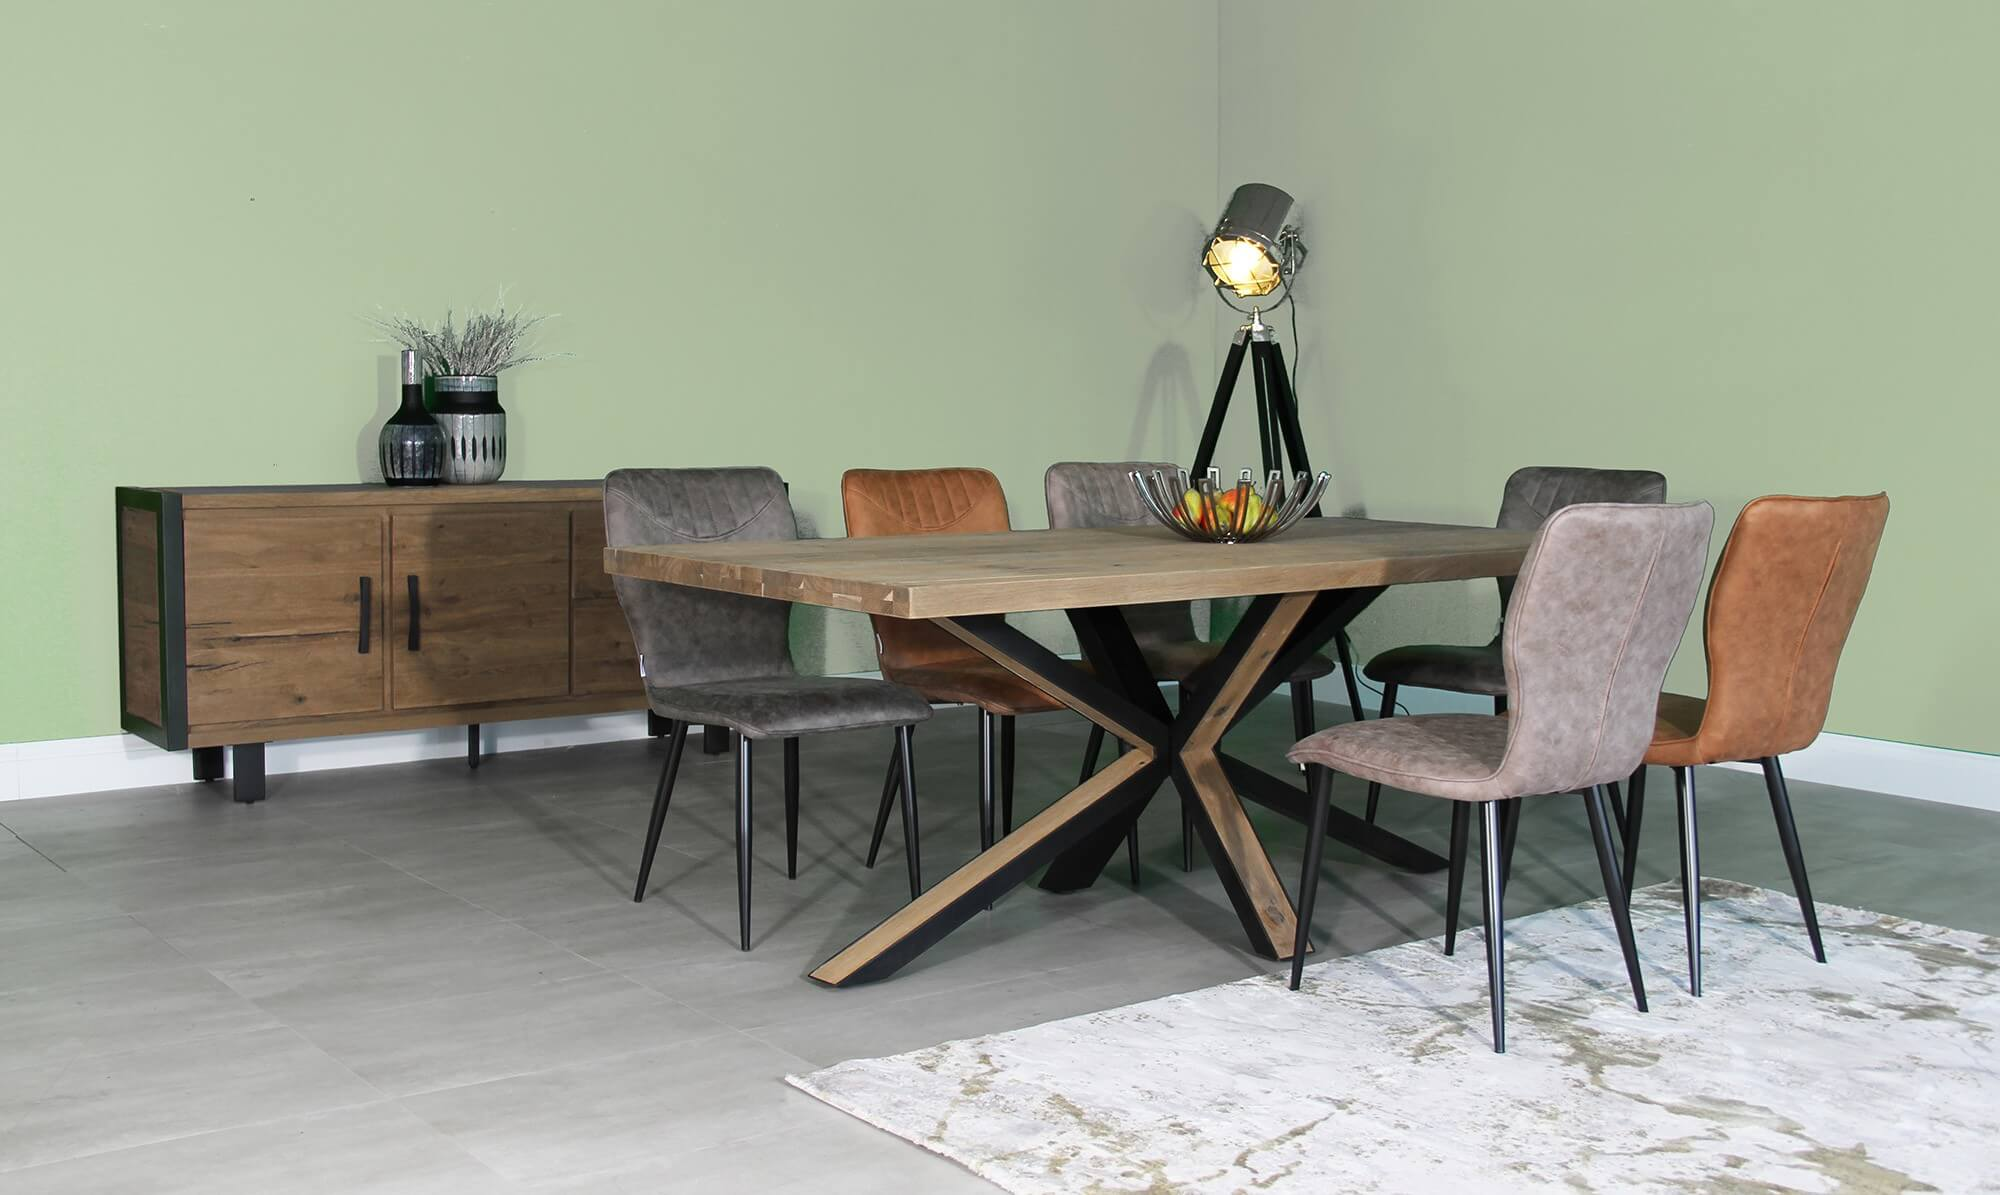 Banks oak dining table - Fishpools